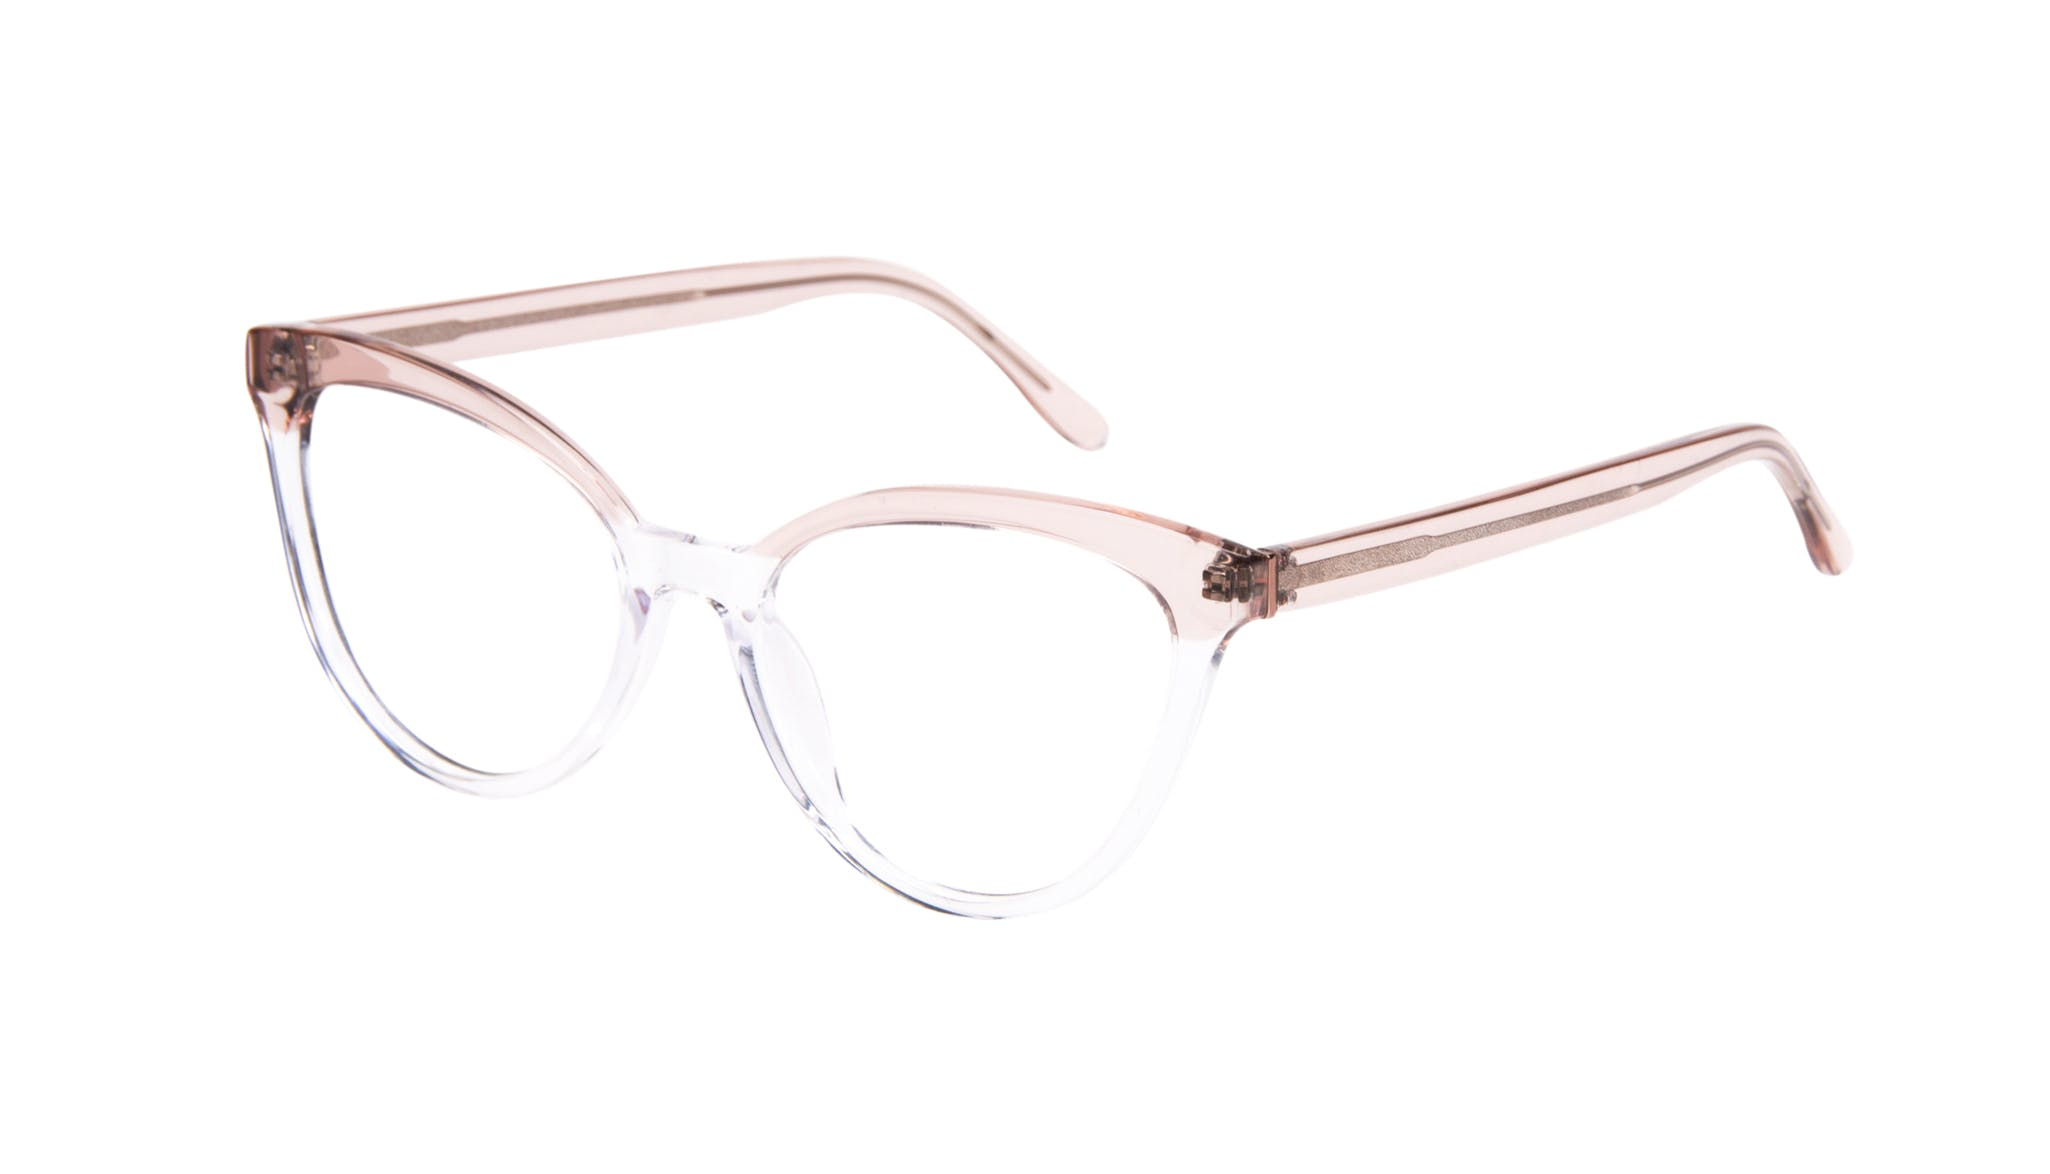 Affordable Fashion Glasses Cat Eye Daring Cateye Eyeglasses Women Reverie Clear rose Tilt